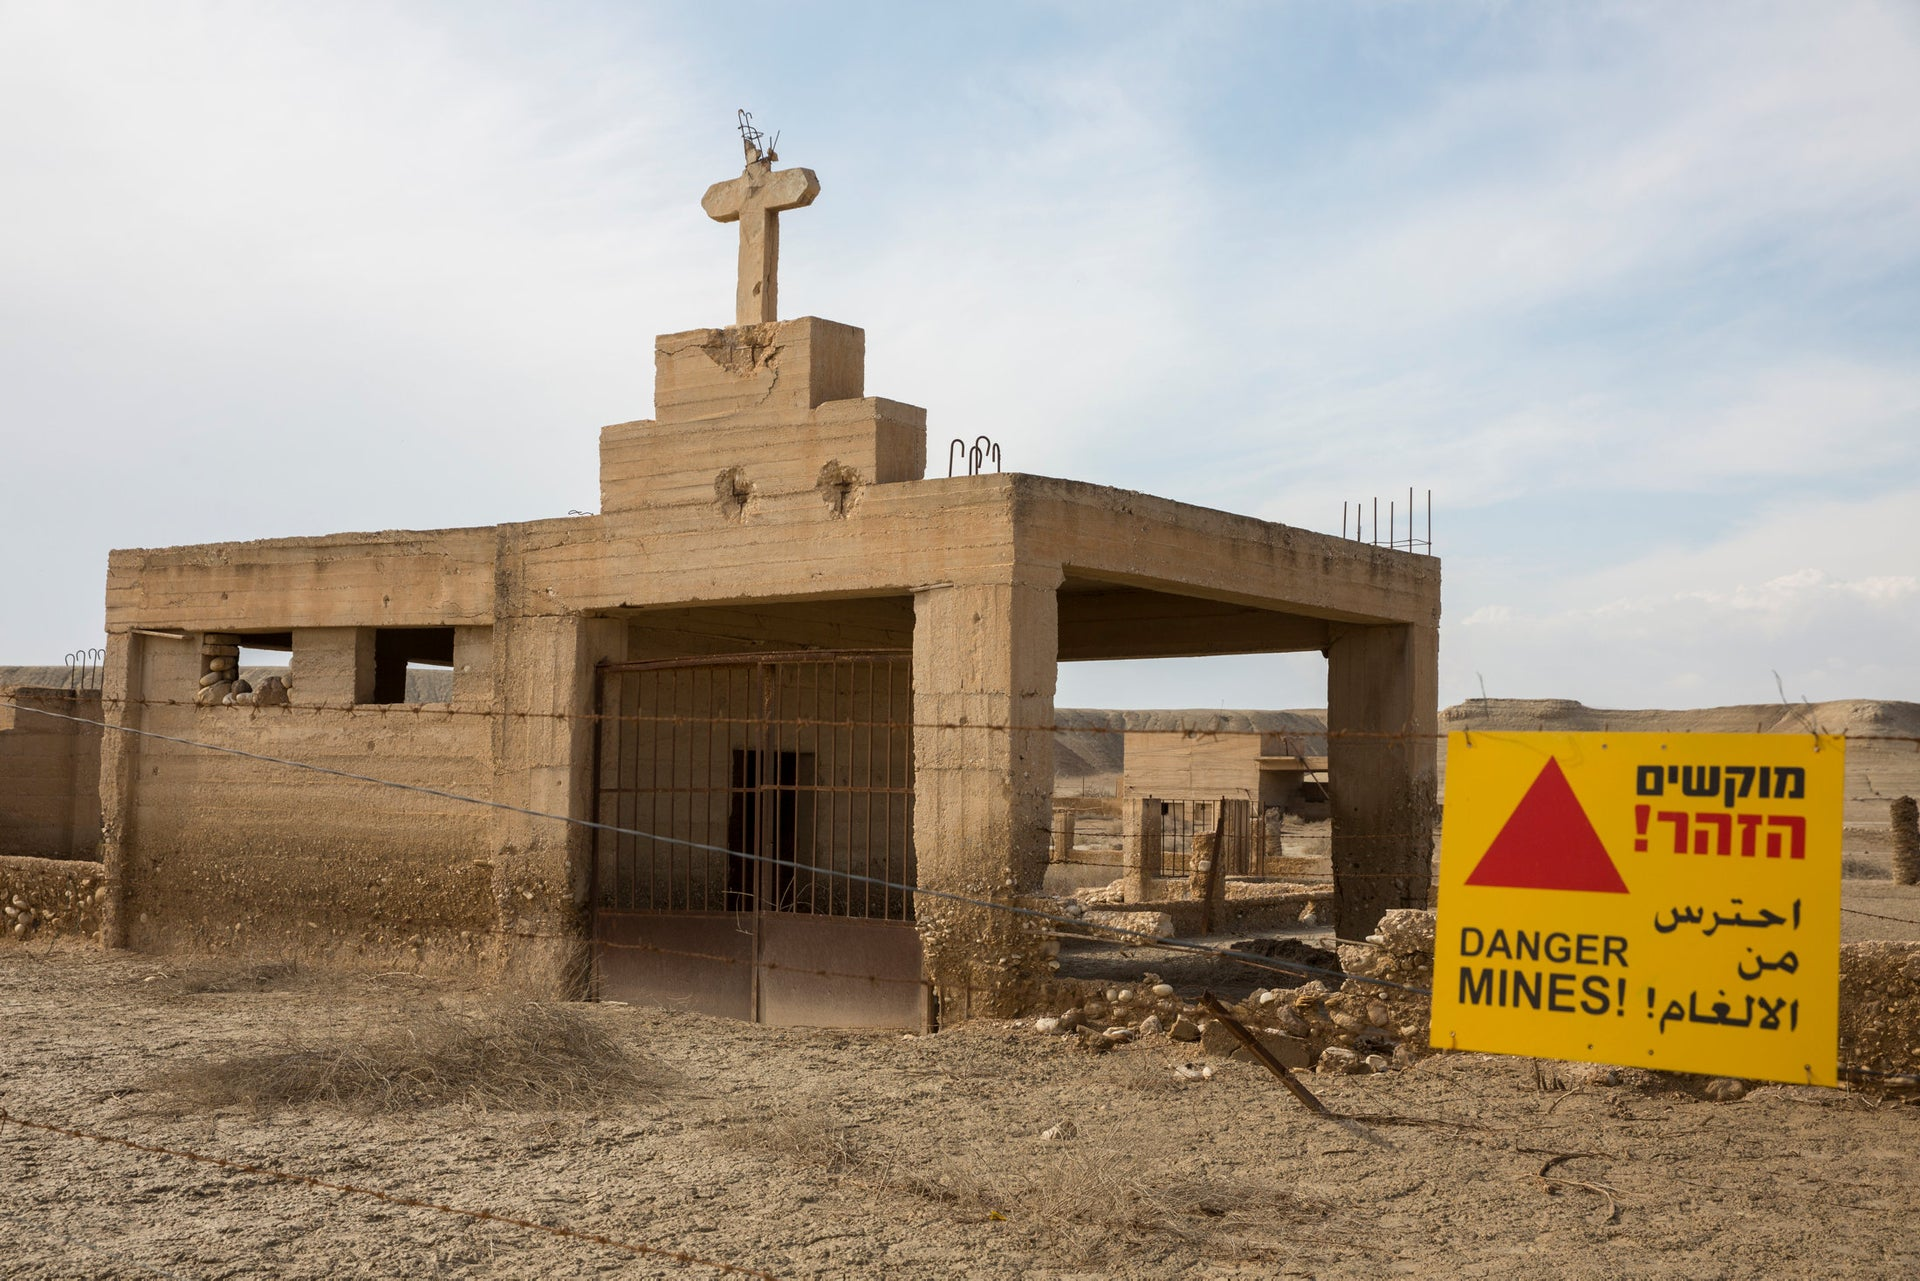 A general view shows an area recently cleared of mines and unexploded ordnance in a project to clear the area near Qasr Al-Yahud, a traditional baptism site along the Jordan River, near Jericho in the occupied West Bank, December 9, 2018.